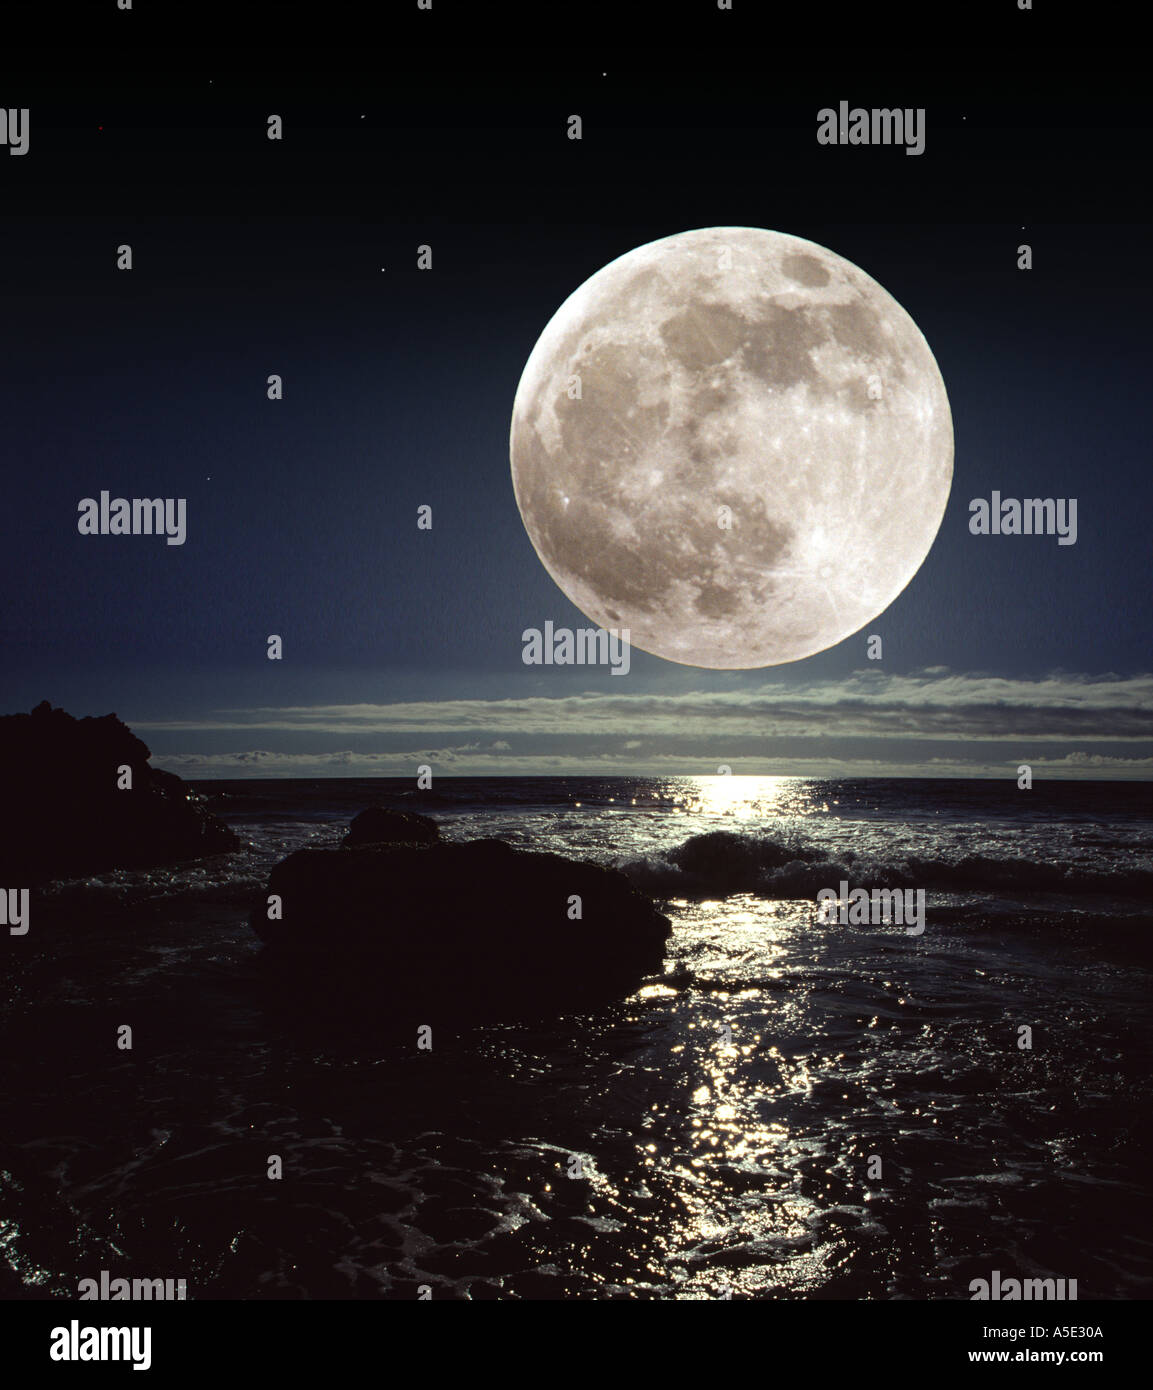 Moon over the Sea - Stock Image